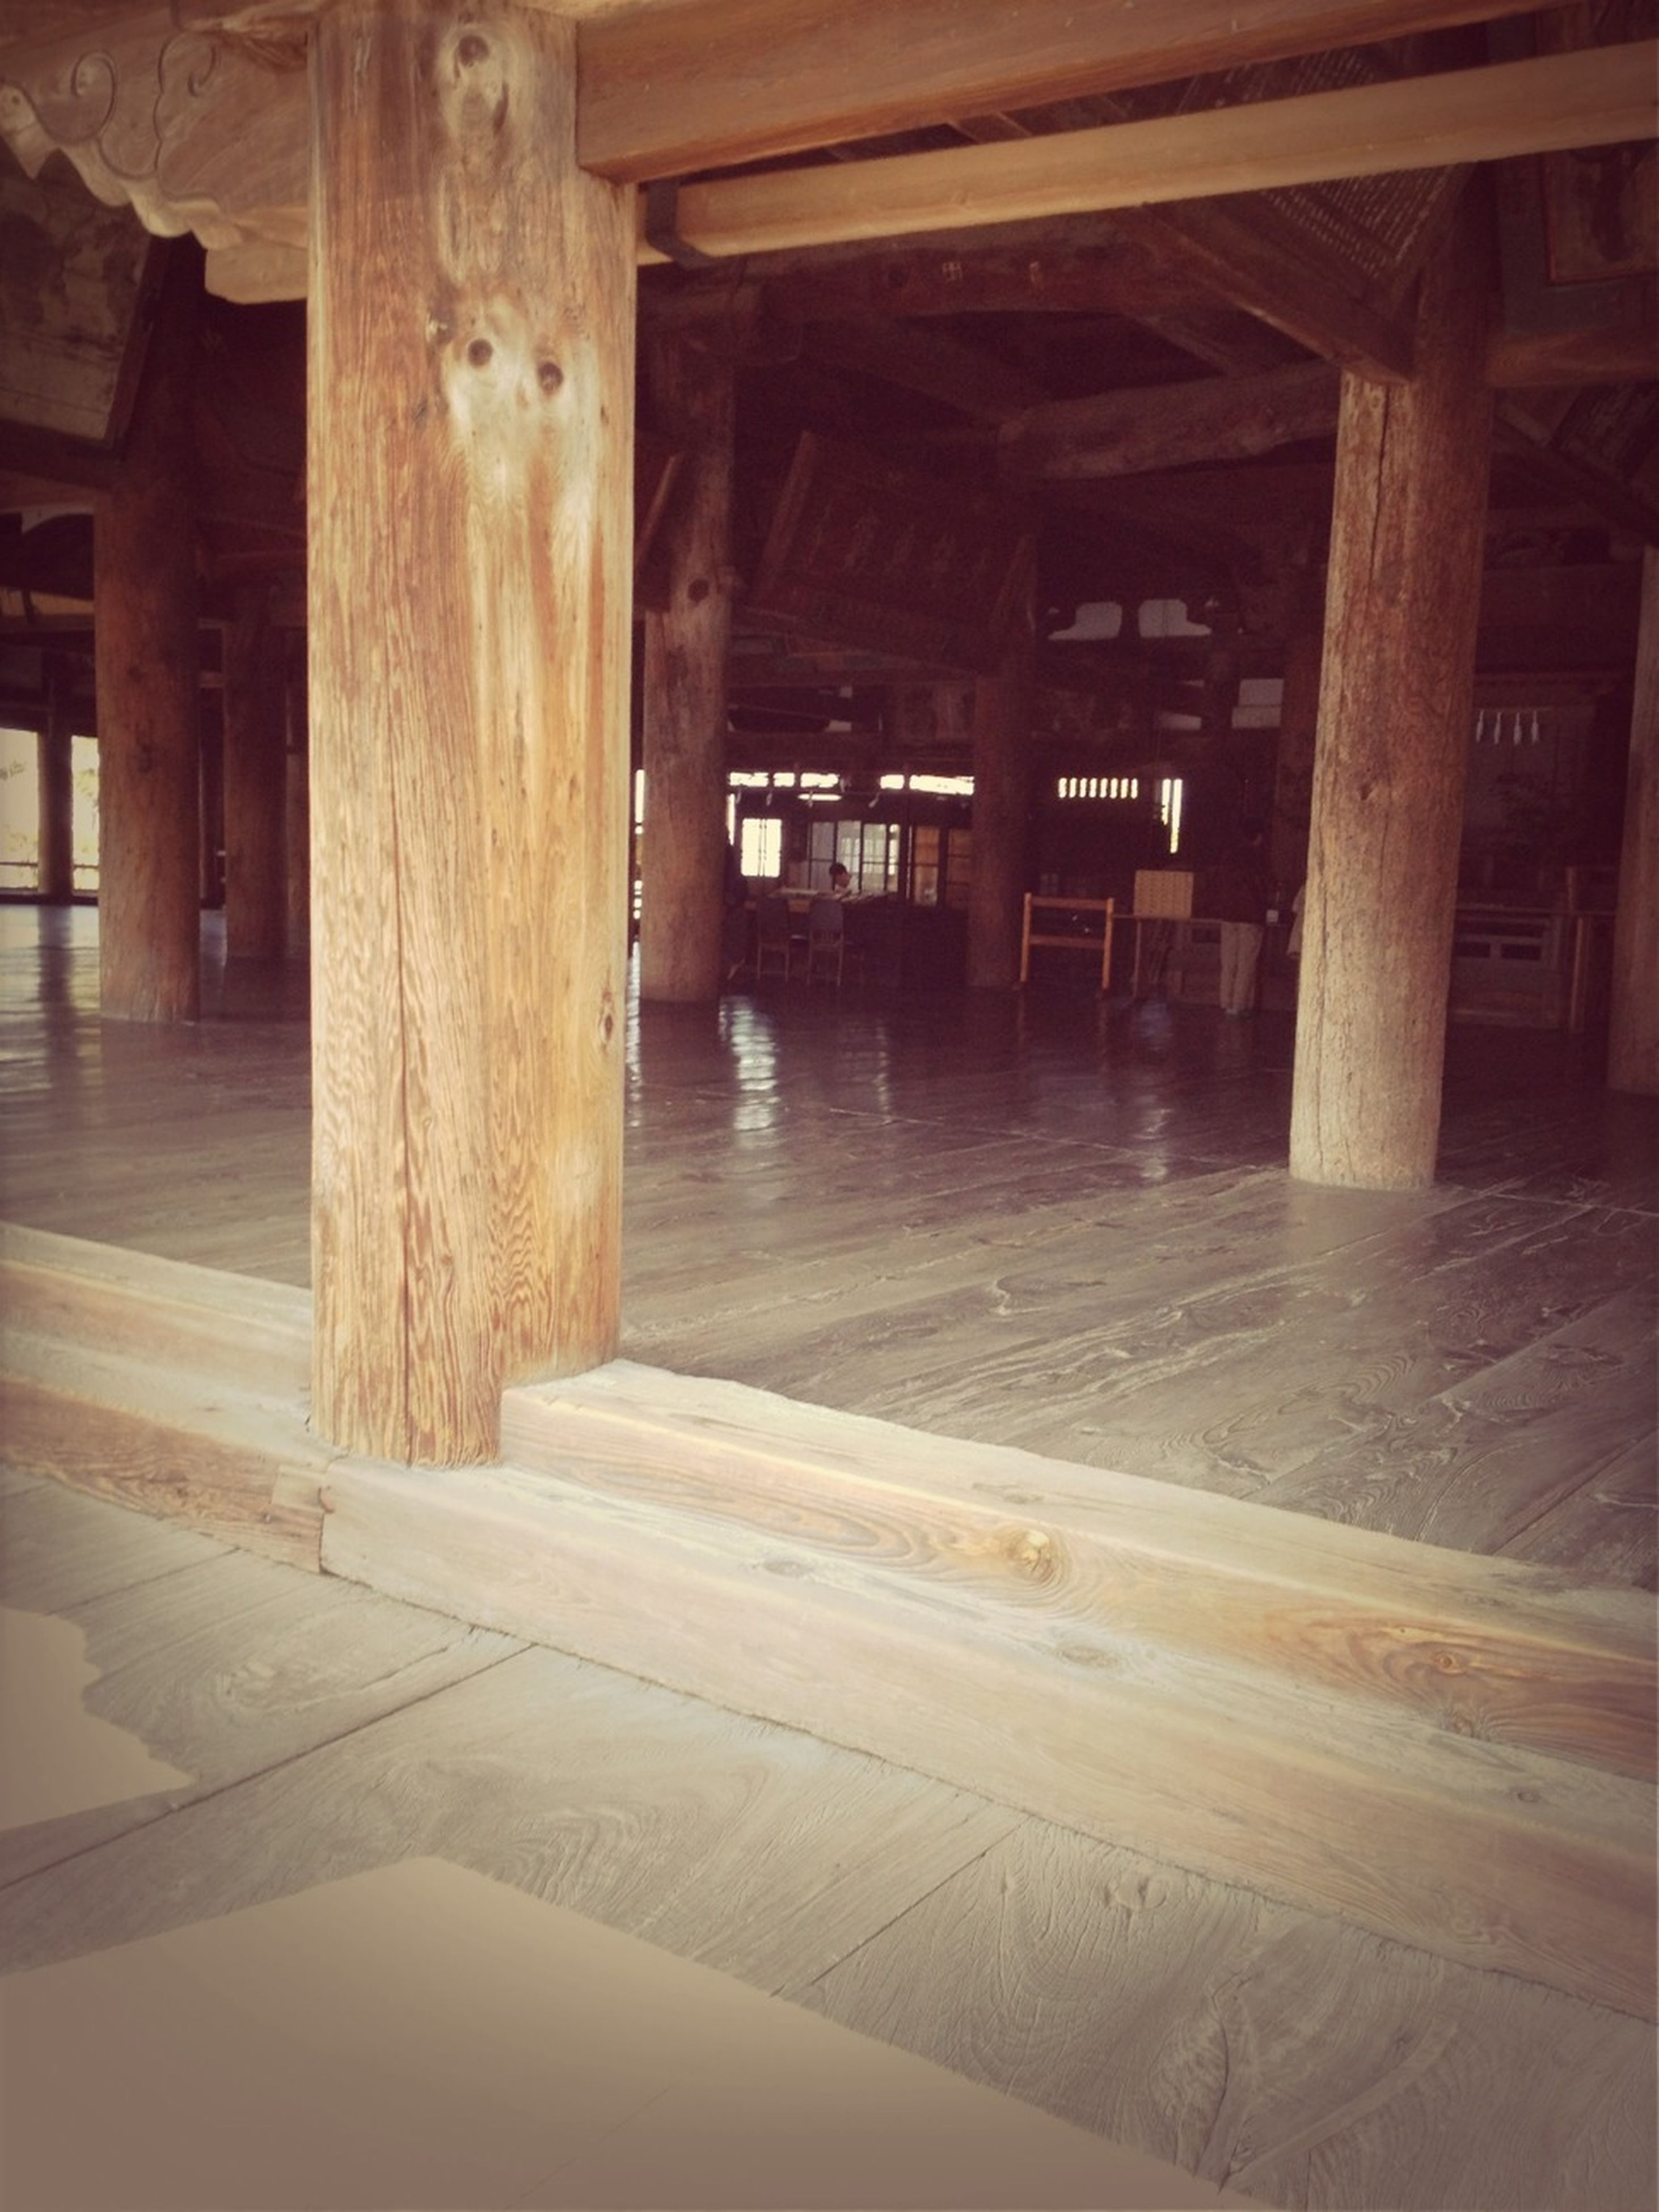 built structure, architecture, architectural column, column, building exterior, indoors, wood - material, building, sunlight, support, no people, pillar, interior, empty, flooring, door, absence, day, house, window